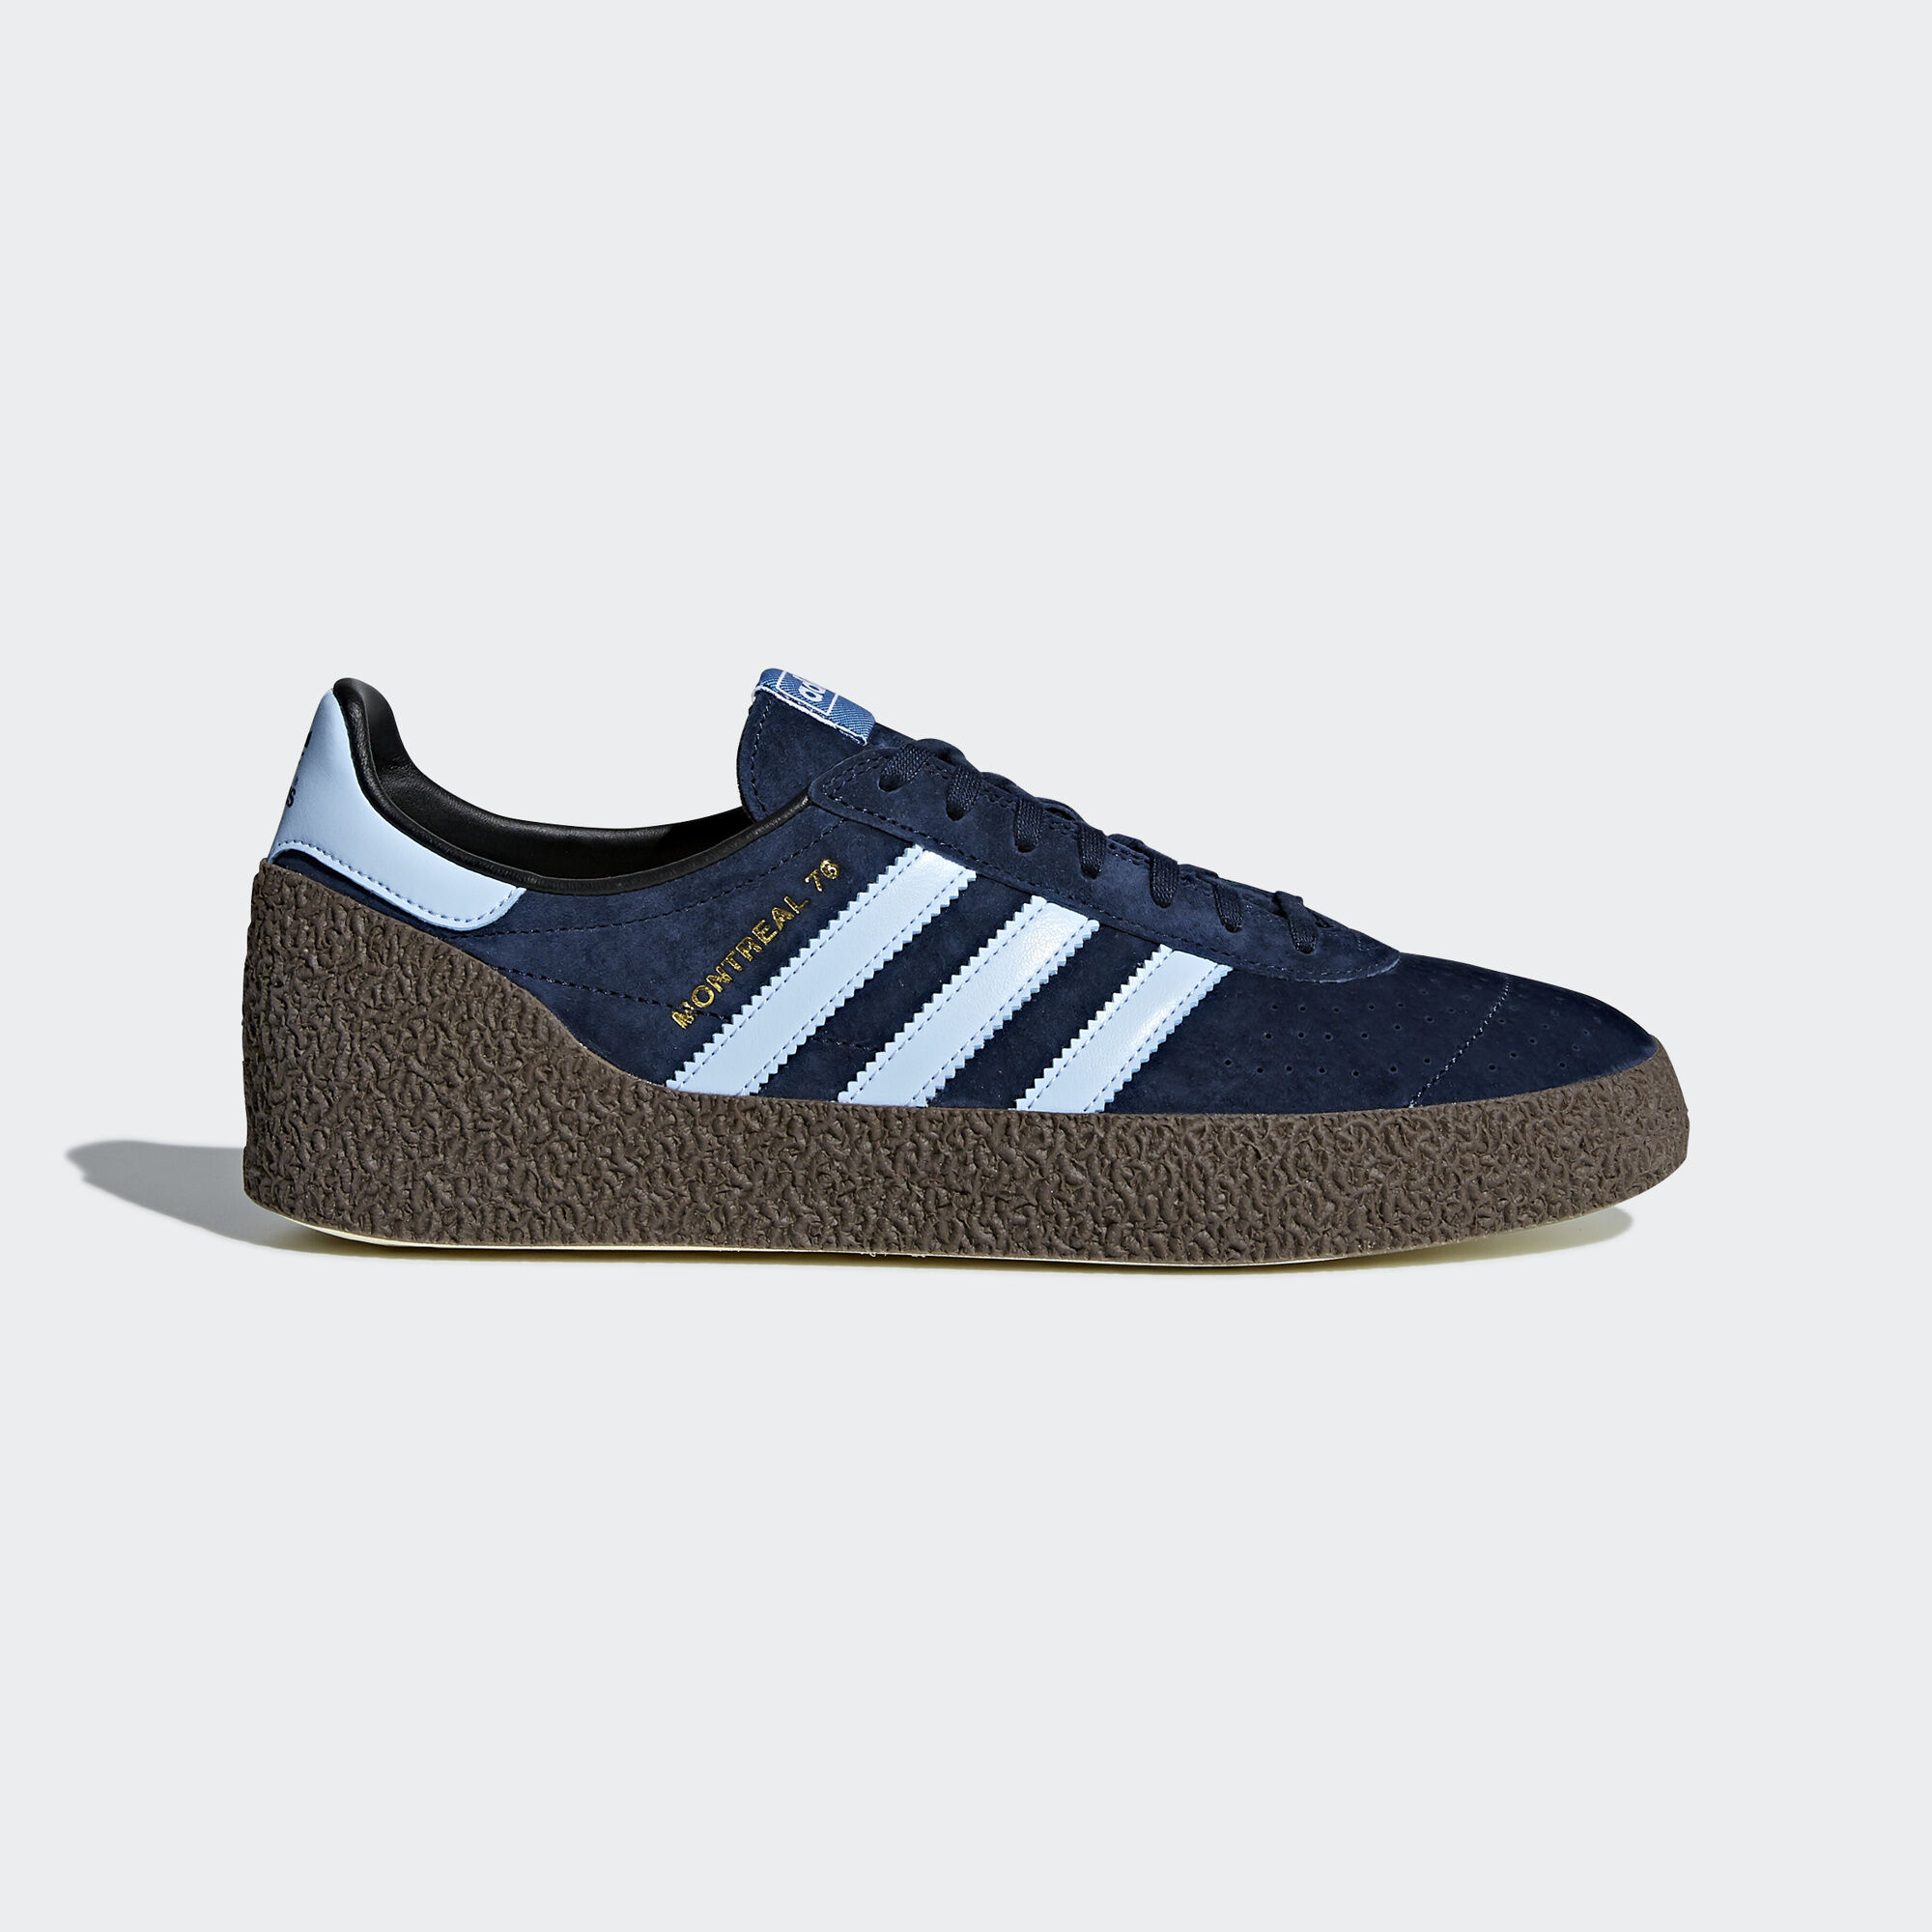 adidas Montreal 76 leather sneakers